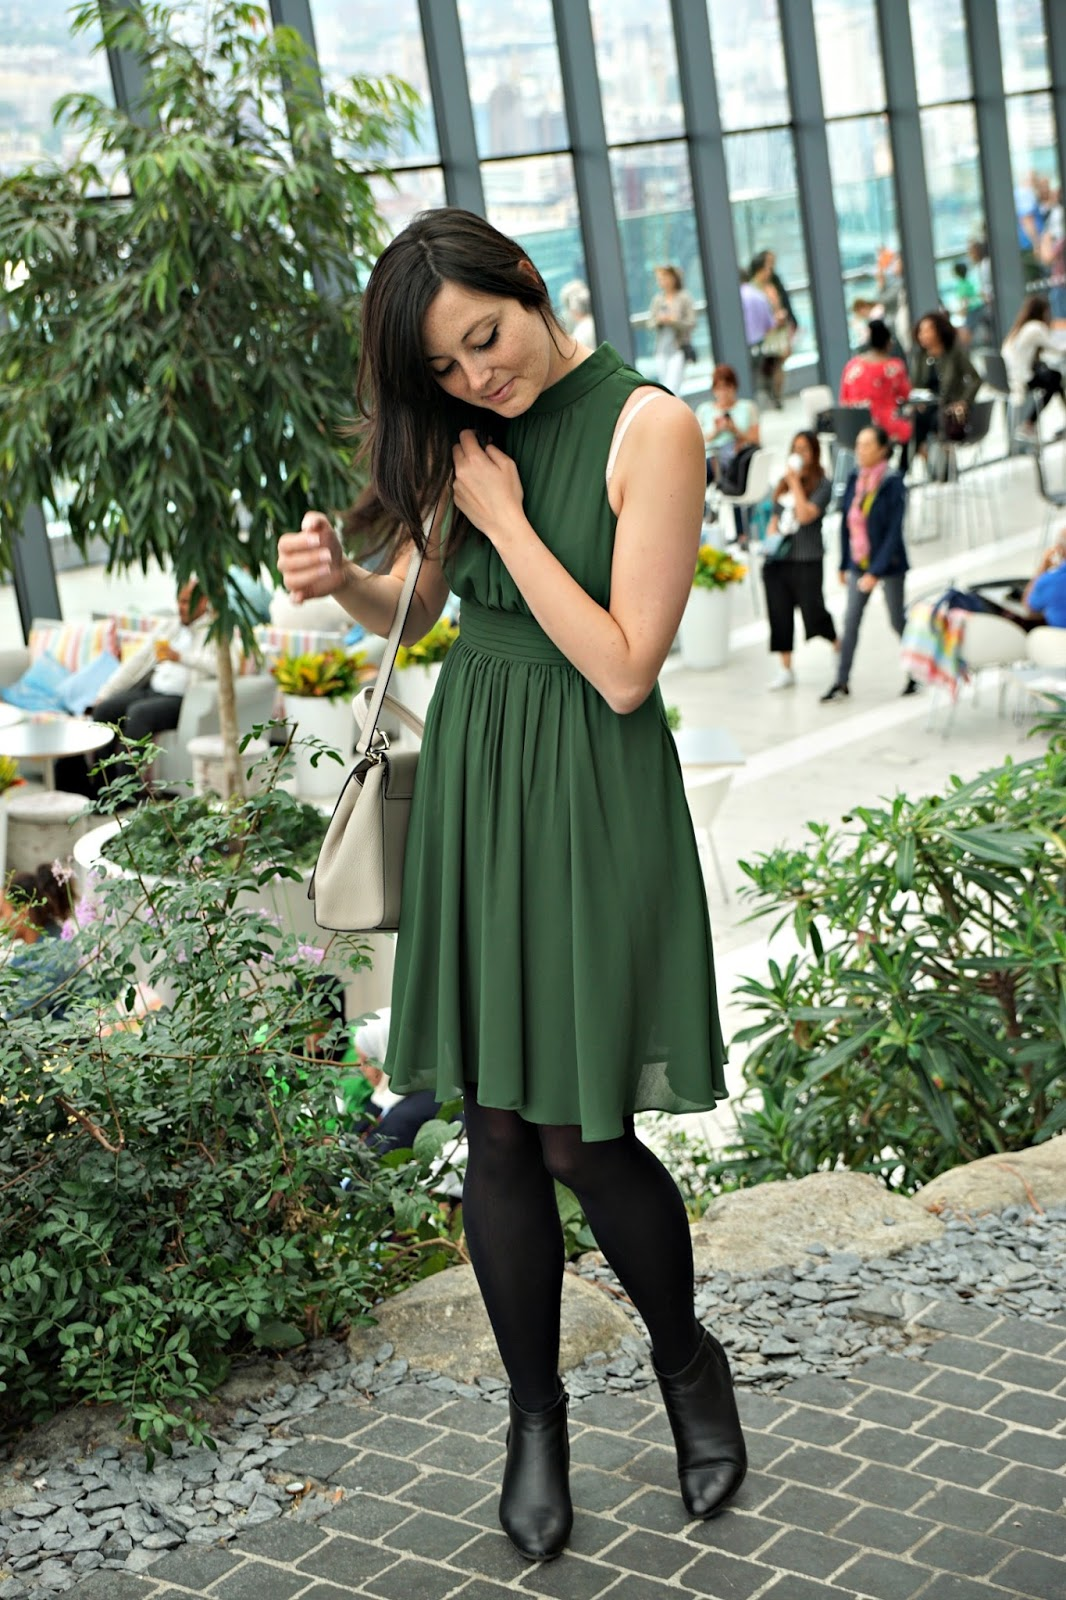 My Green Dress from Zara